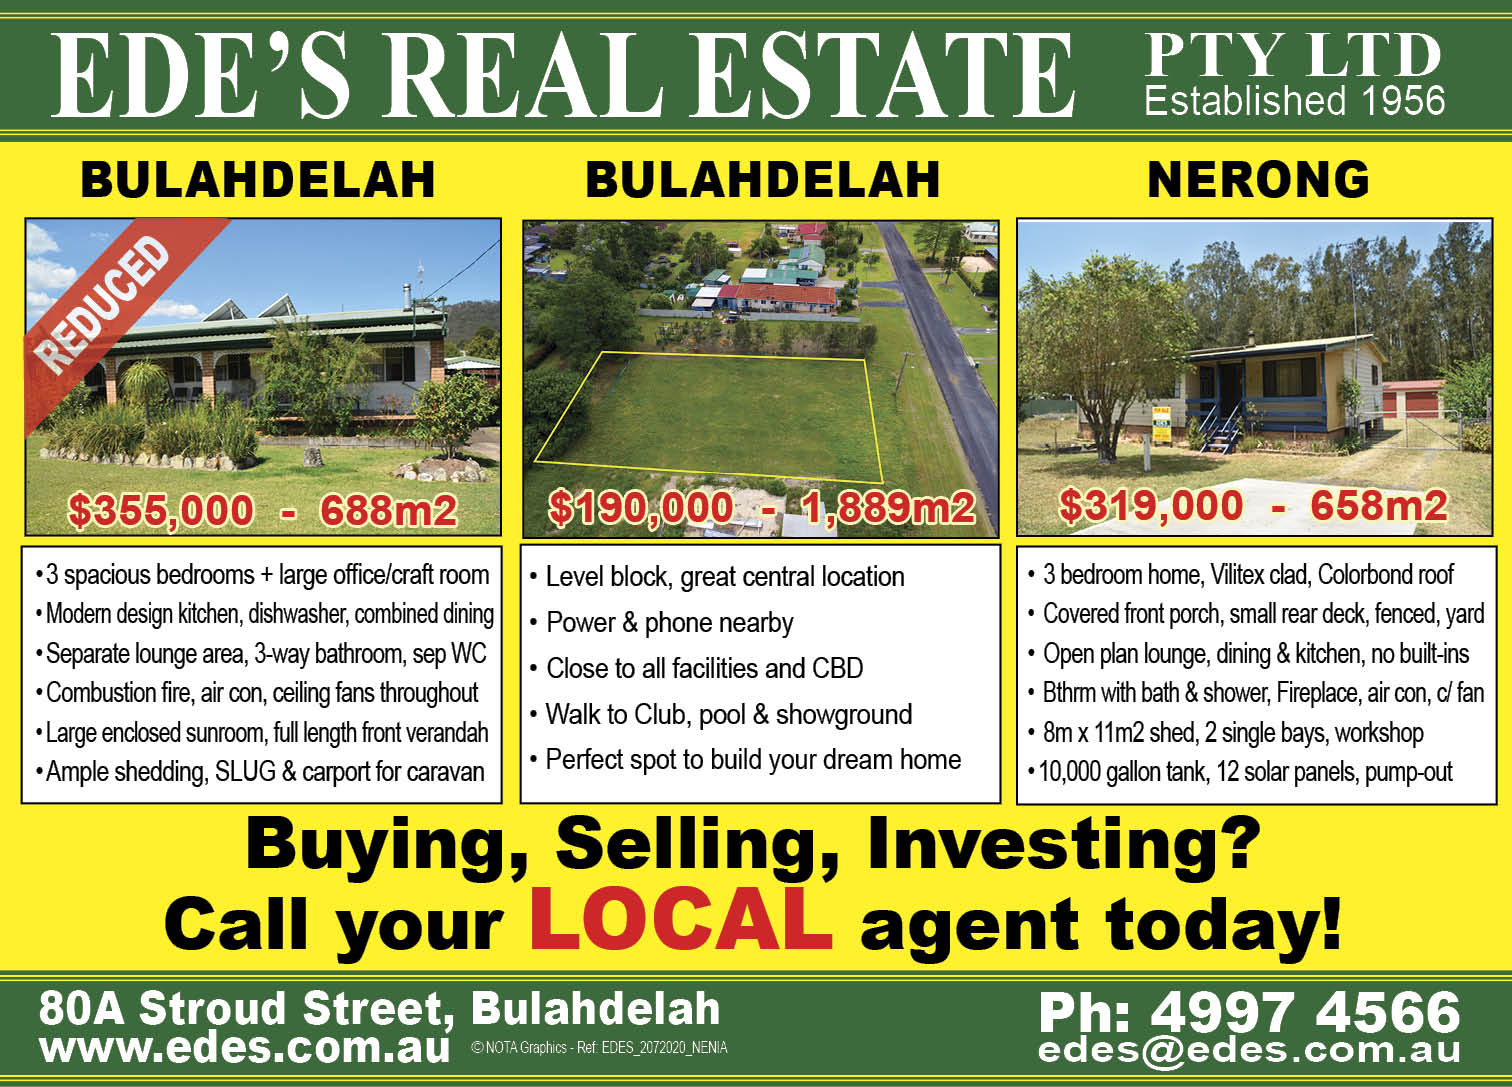 Ede's Real Estate